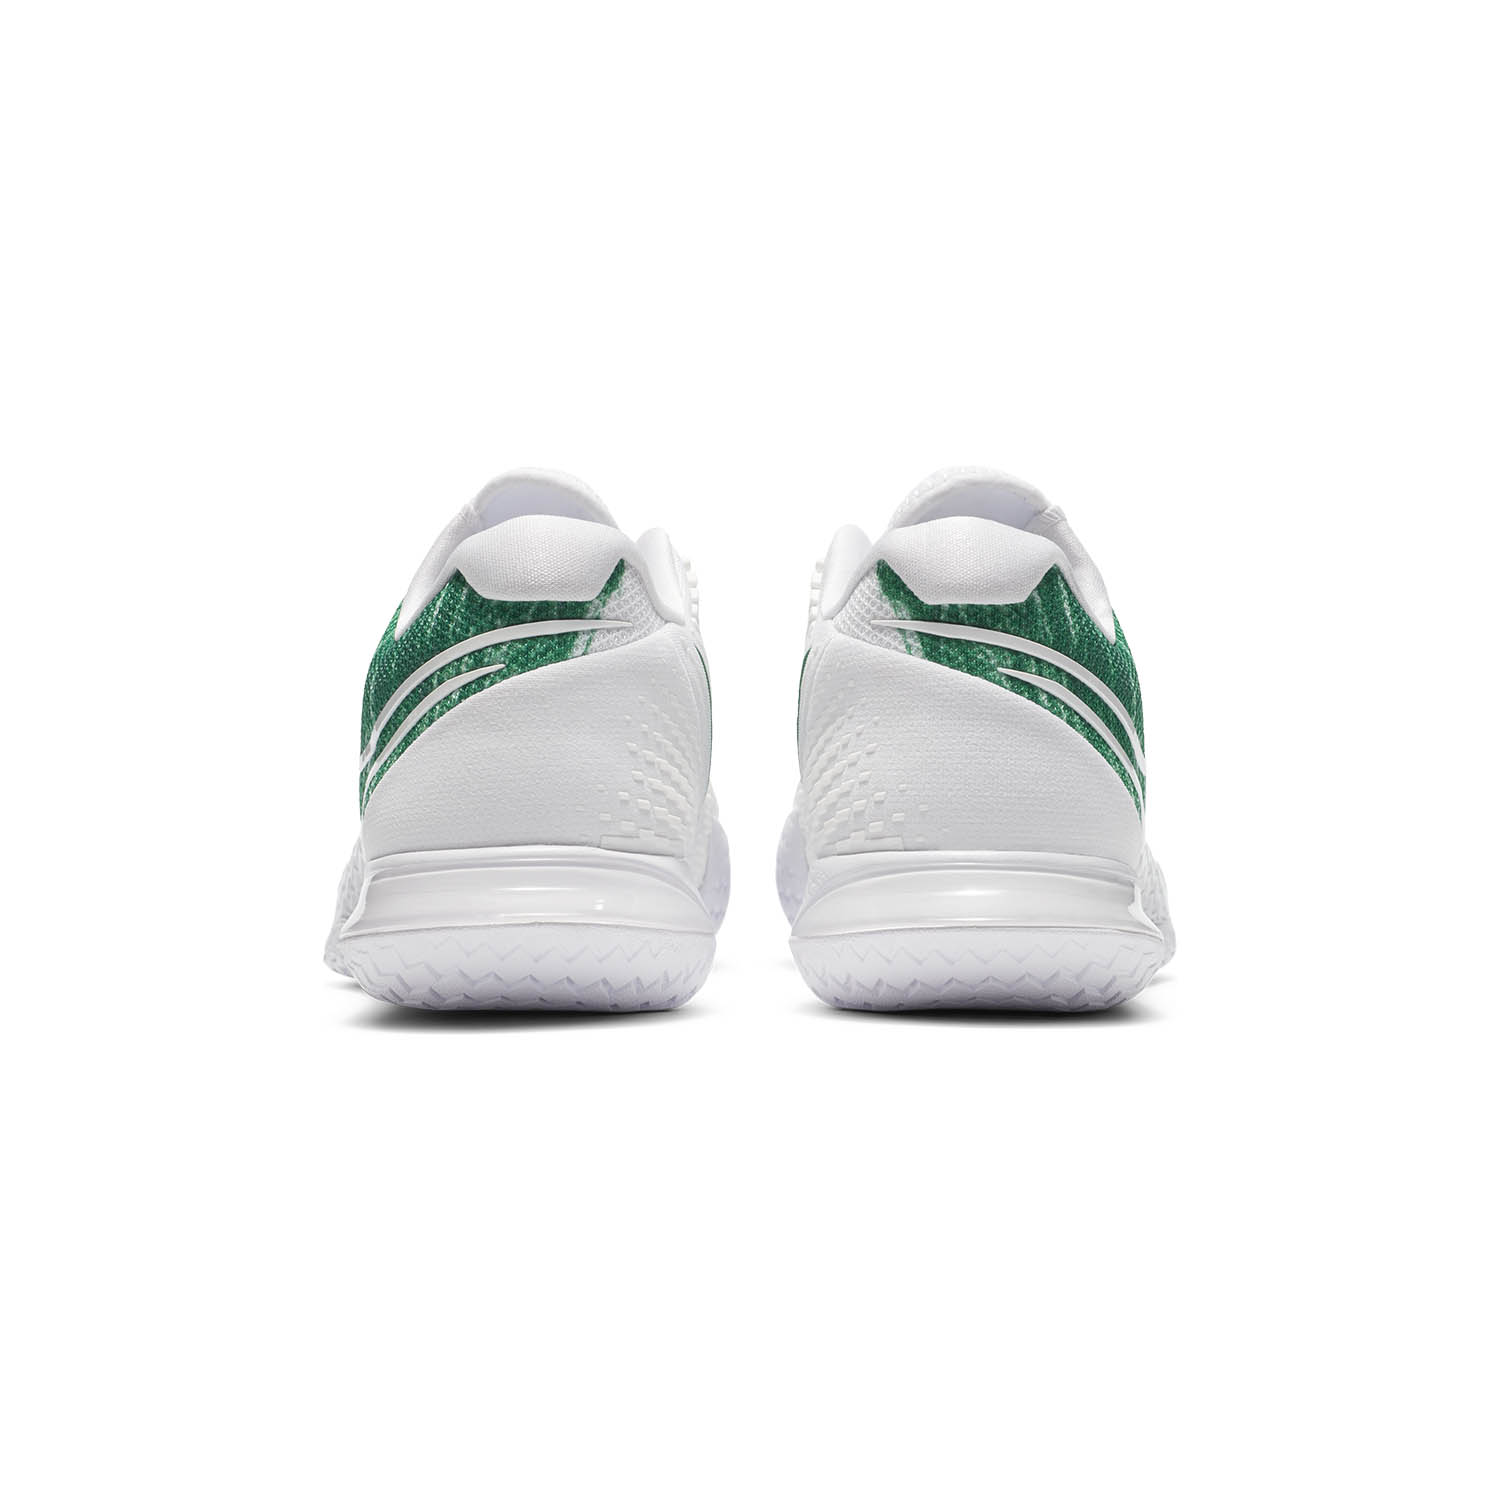 Nike Air Zoom Vapor Cage 4 HC - White/Clover